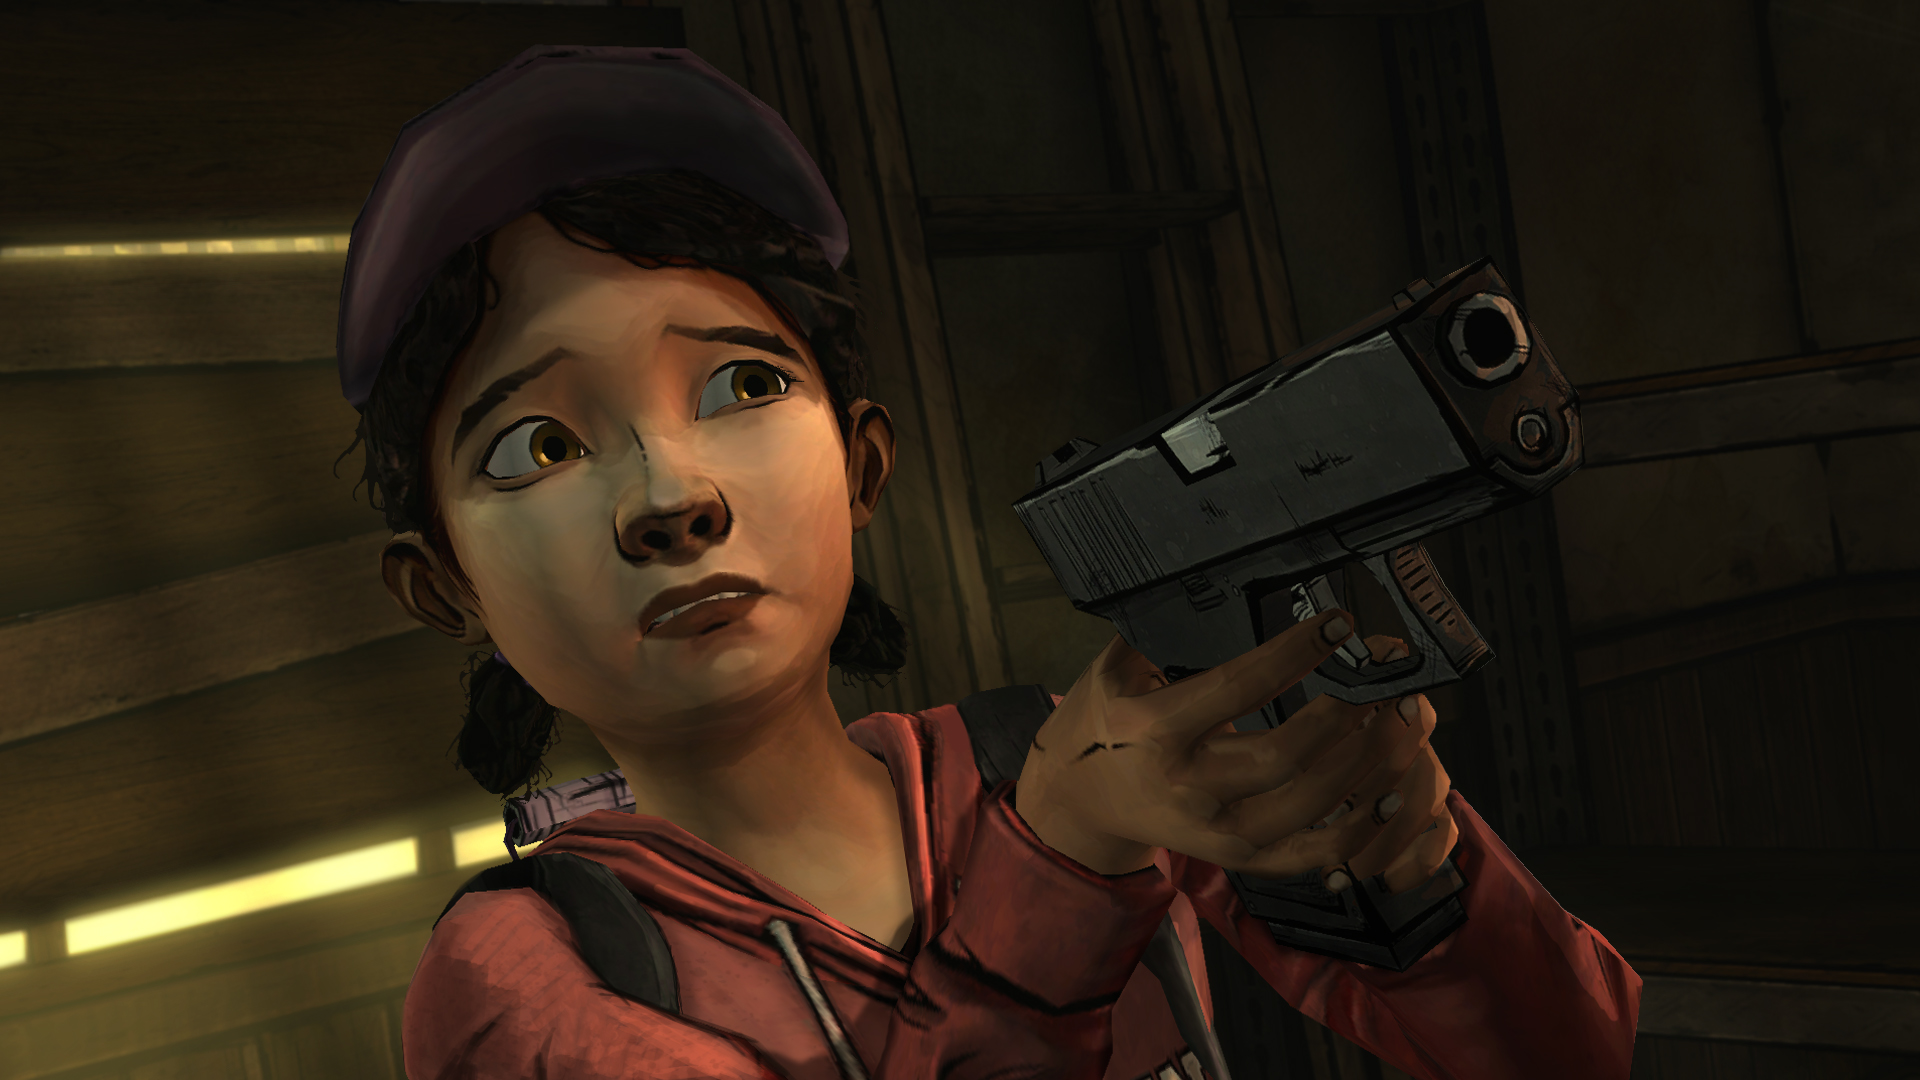 the wailking dead 3d hentai movies If You Didn't Make This Choice In The Walking Dead, Clementine Would Make